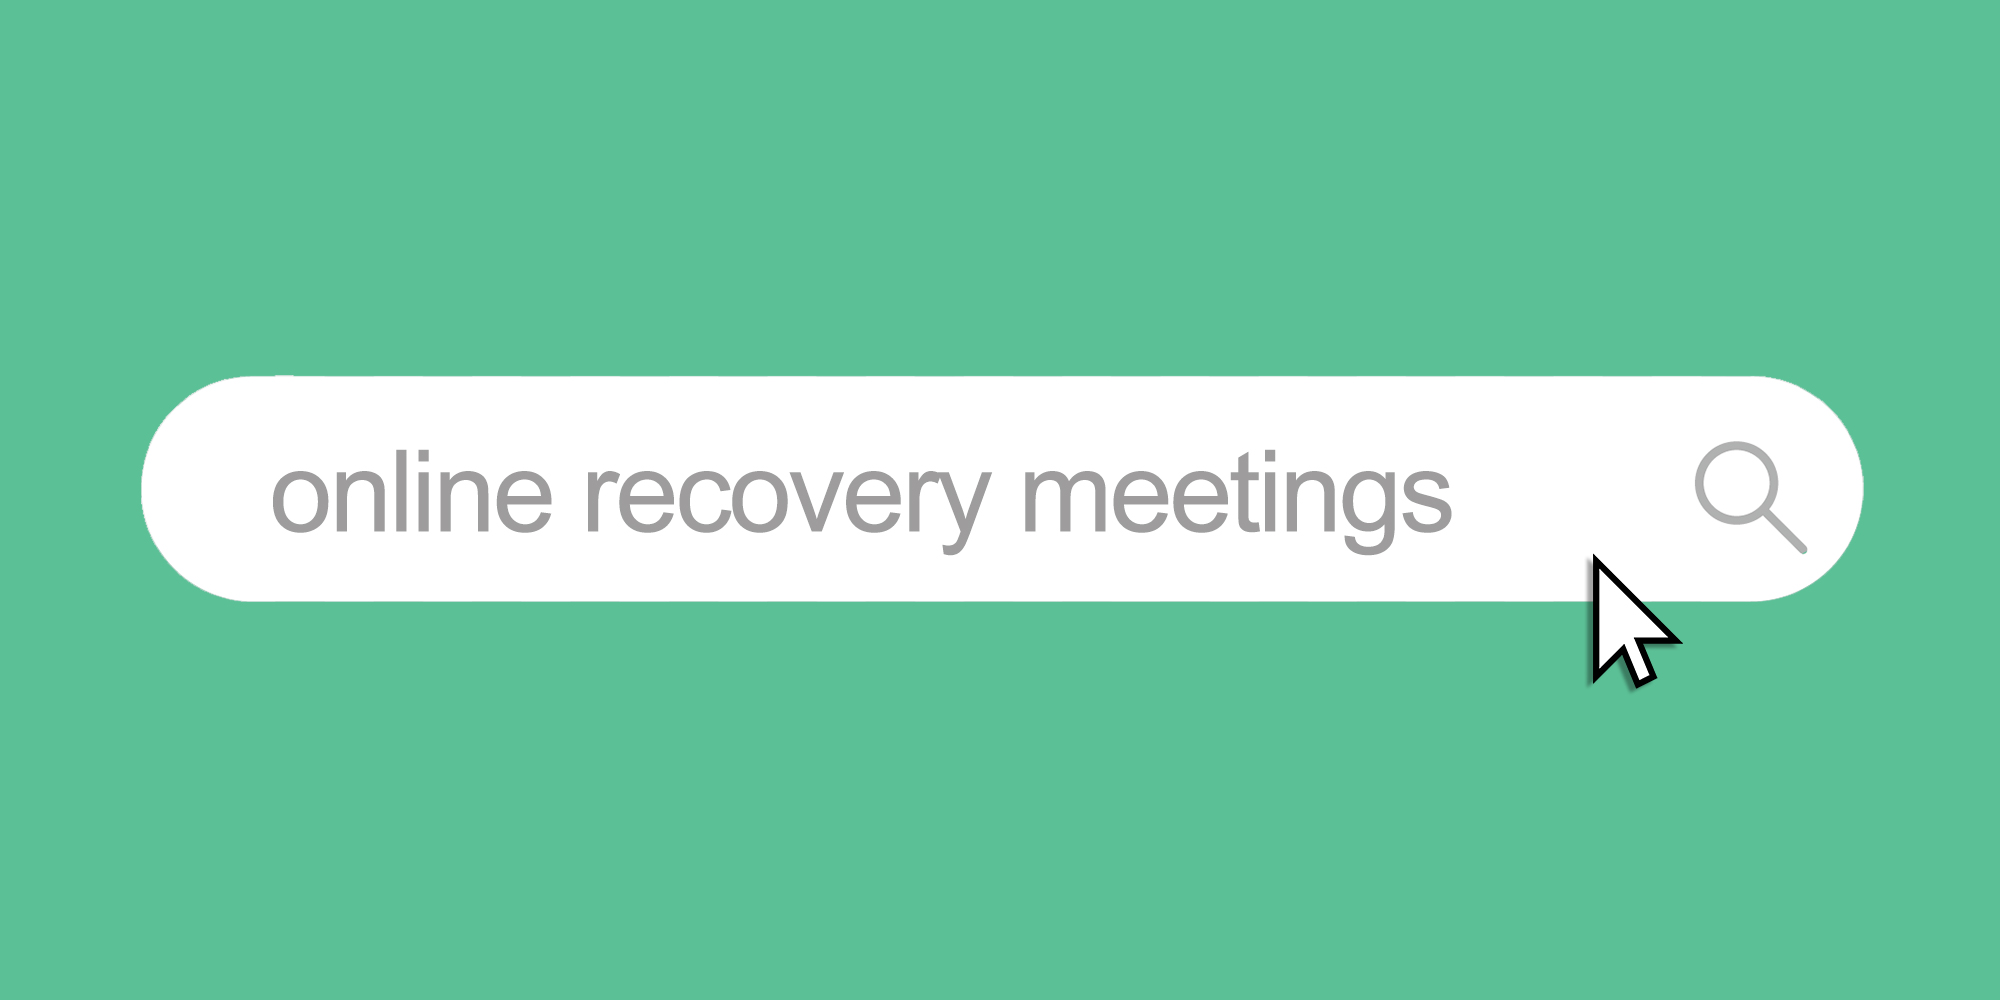 online-recovery-meetings-person-laptop